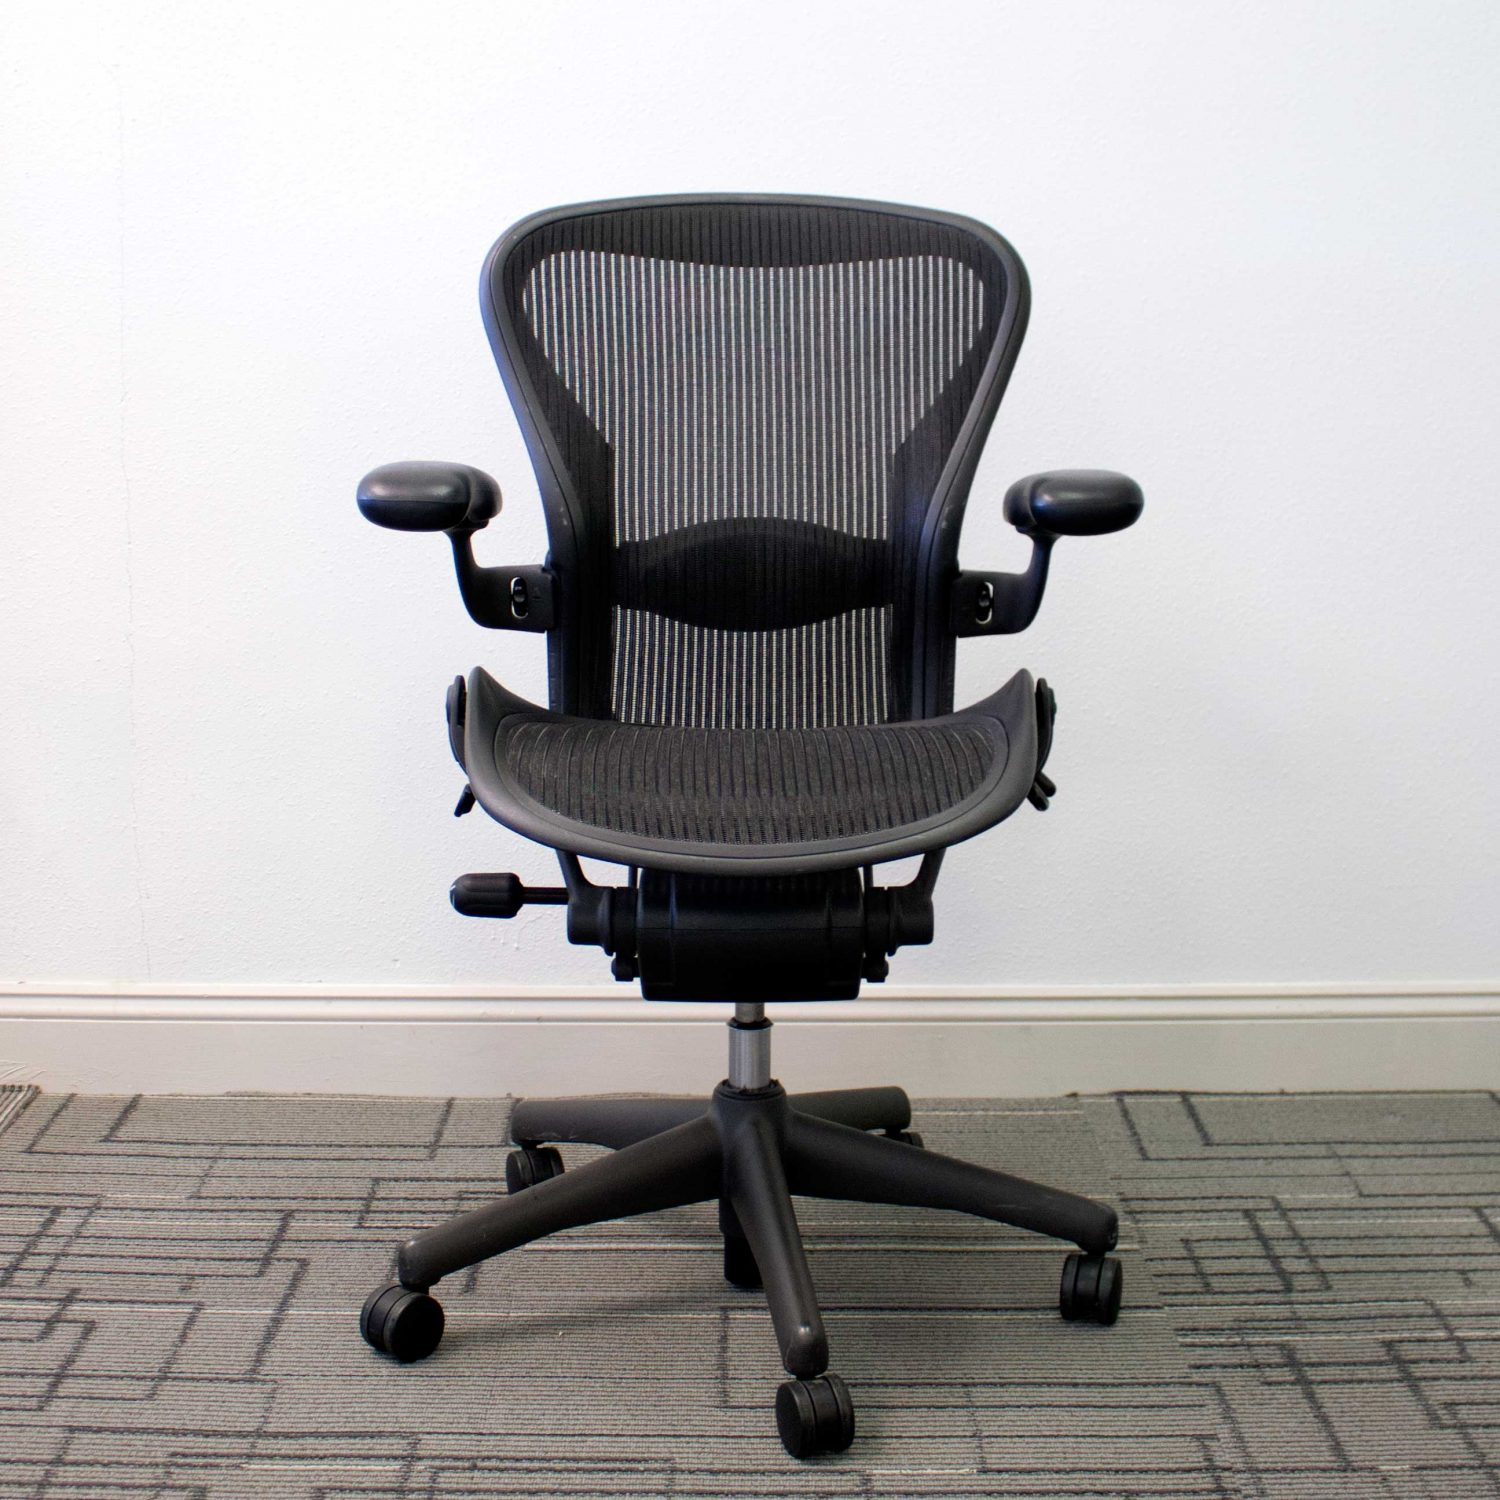 used herman miller aeron chairs size b - Aeron Chair Sizes